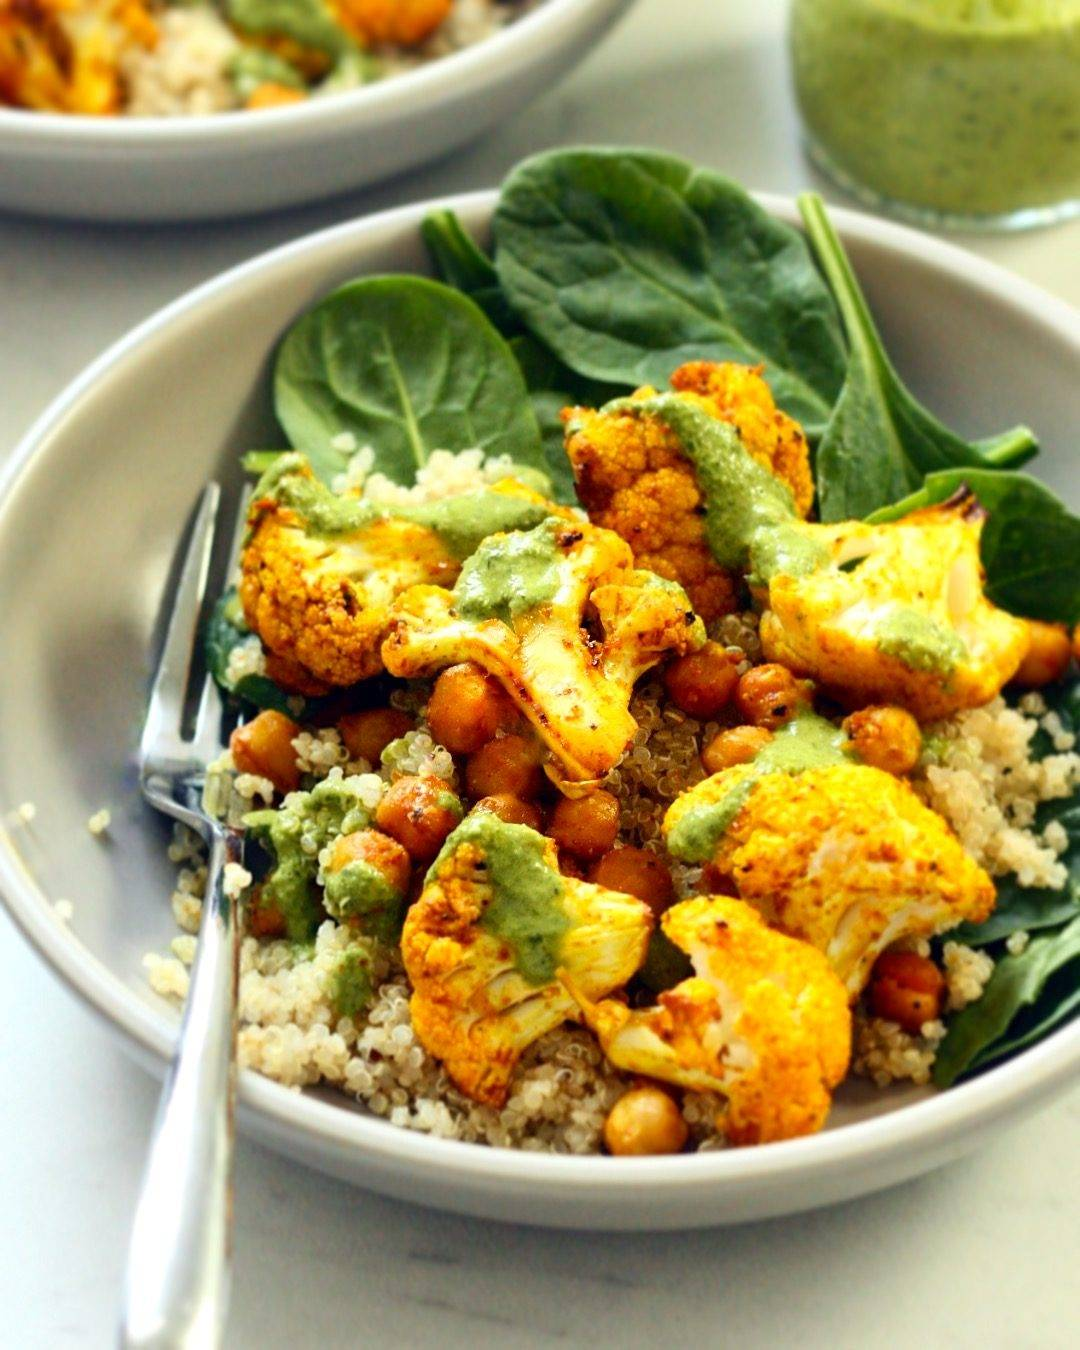 Golden Cauliflower Bowls w/ Lemon Parsley Vinaigrette